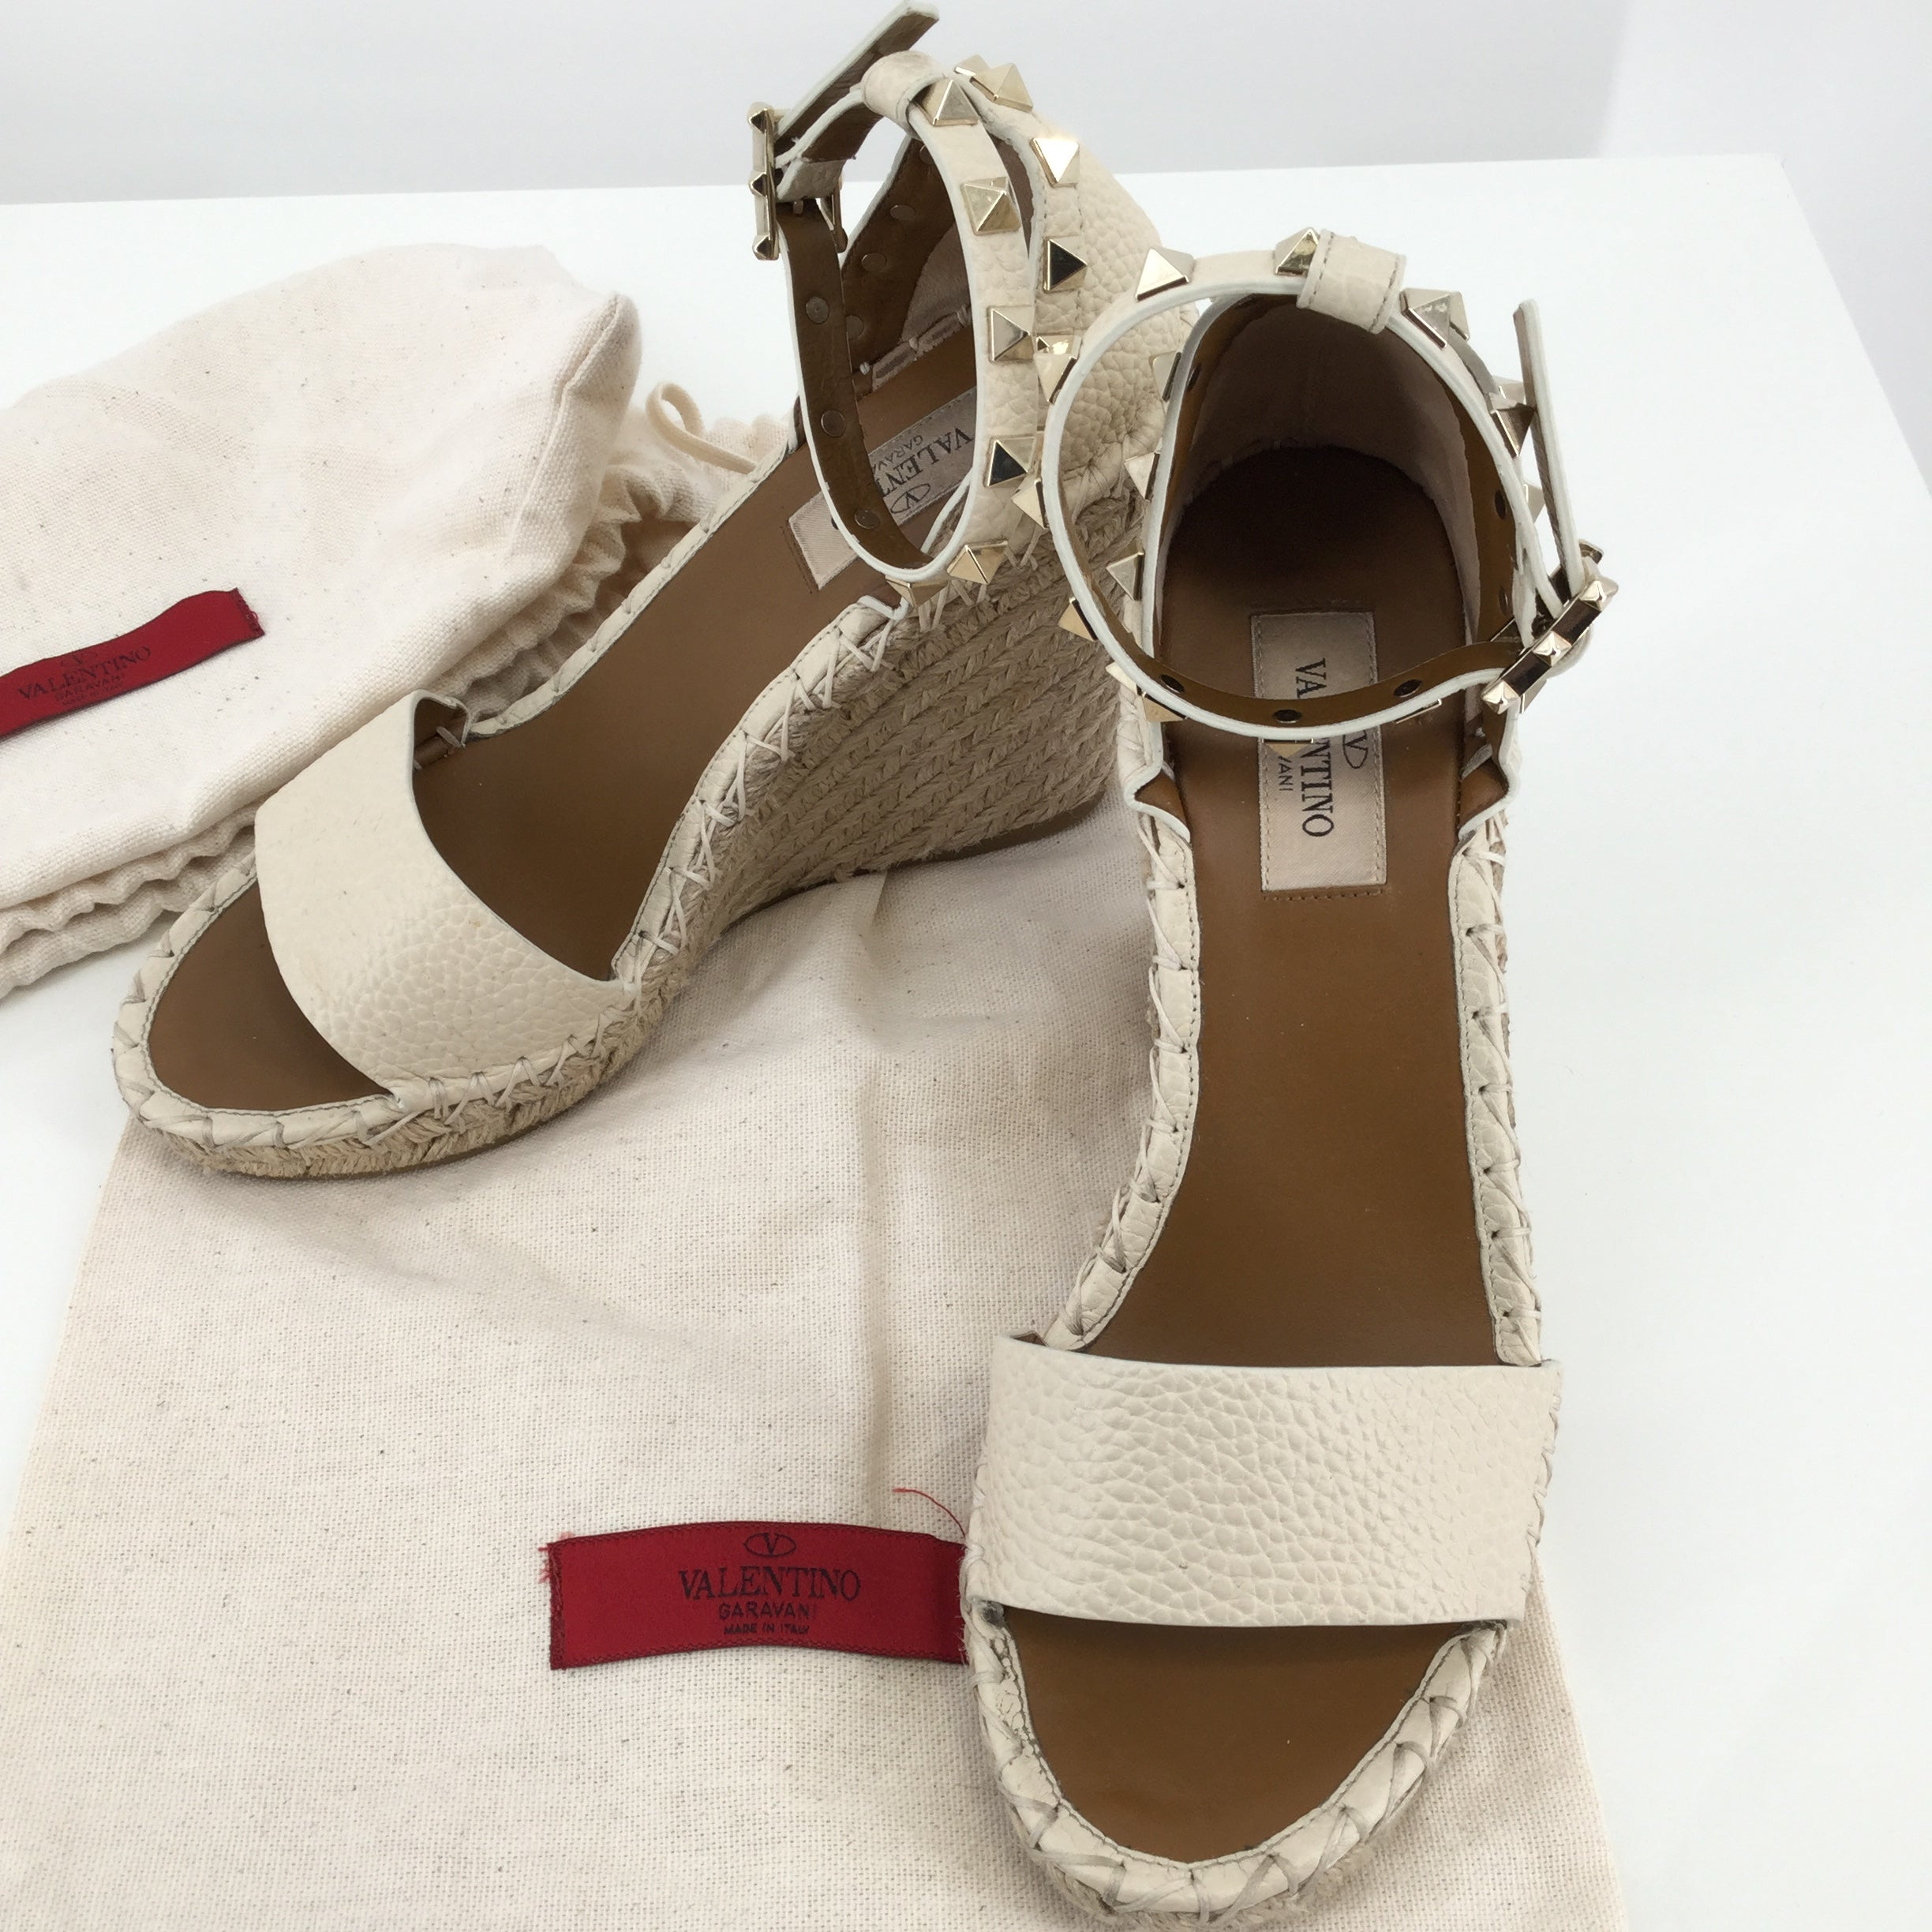 Valentino Studded Wedge Sandals, Size 6 - VALENTINO ROCKSTUD ESPADRILLE WEDGE SANDAL. SIZE 36. COLOR BEIGE. SOME MINOR CONDITION ON TOP AND BOTTOM OF SHOE. ON BERGDORF GOODMAN AND NORDSTROM SITE RIGHT NOW FOR $795!.